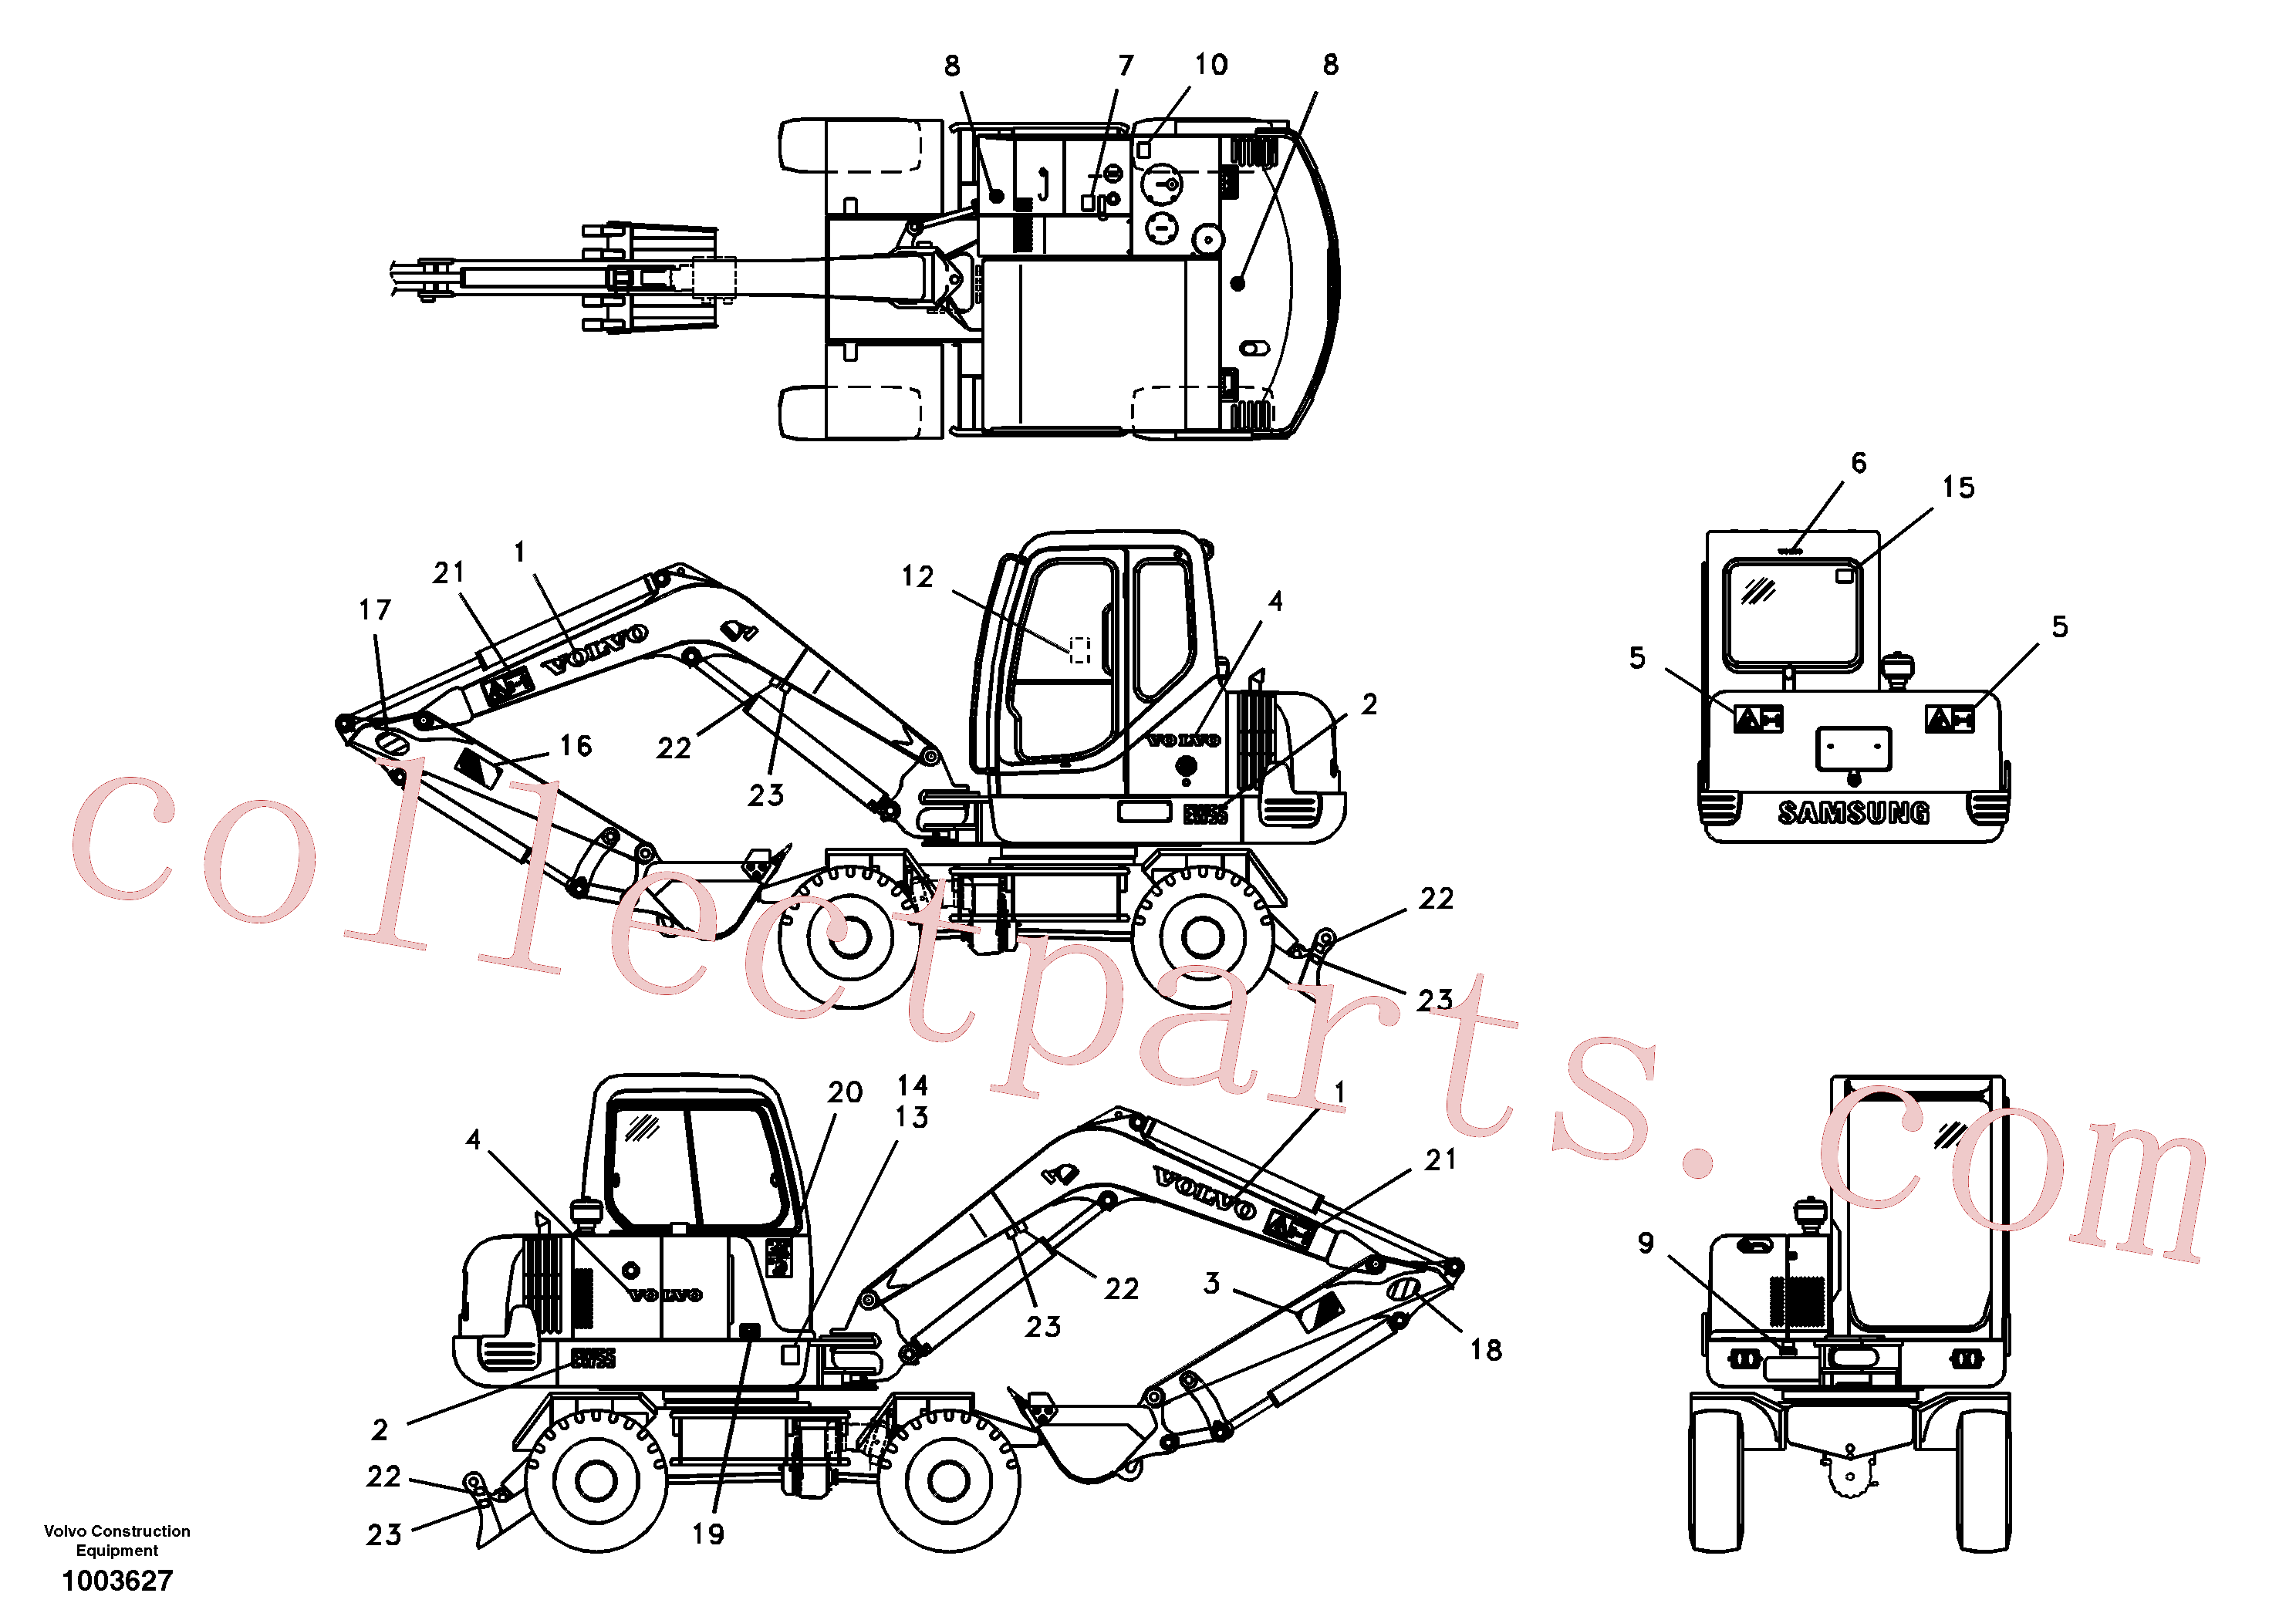 SAP4100152 for Volvo Decal, outer location(1003627 assembly)